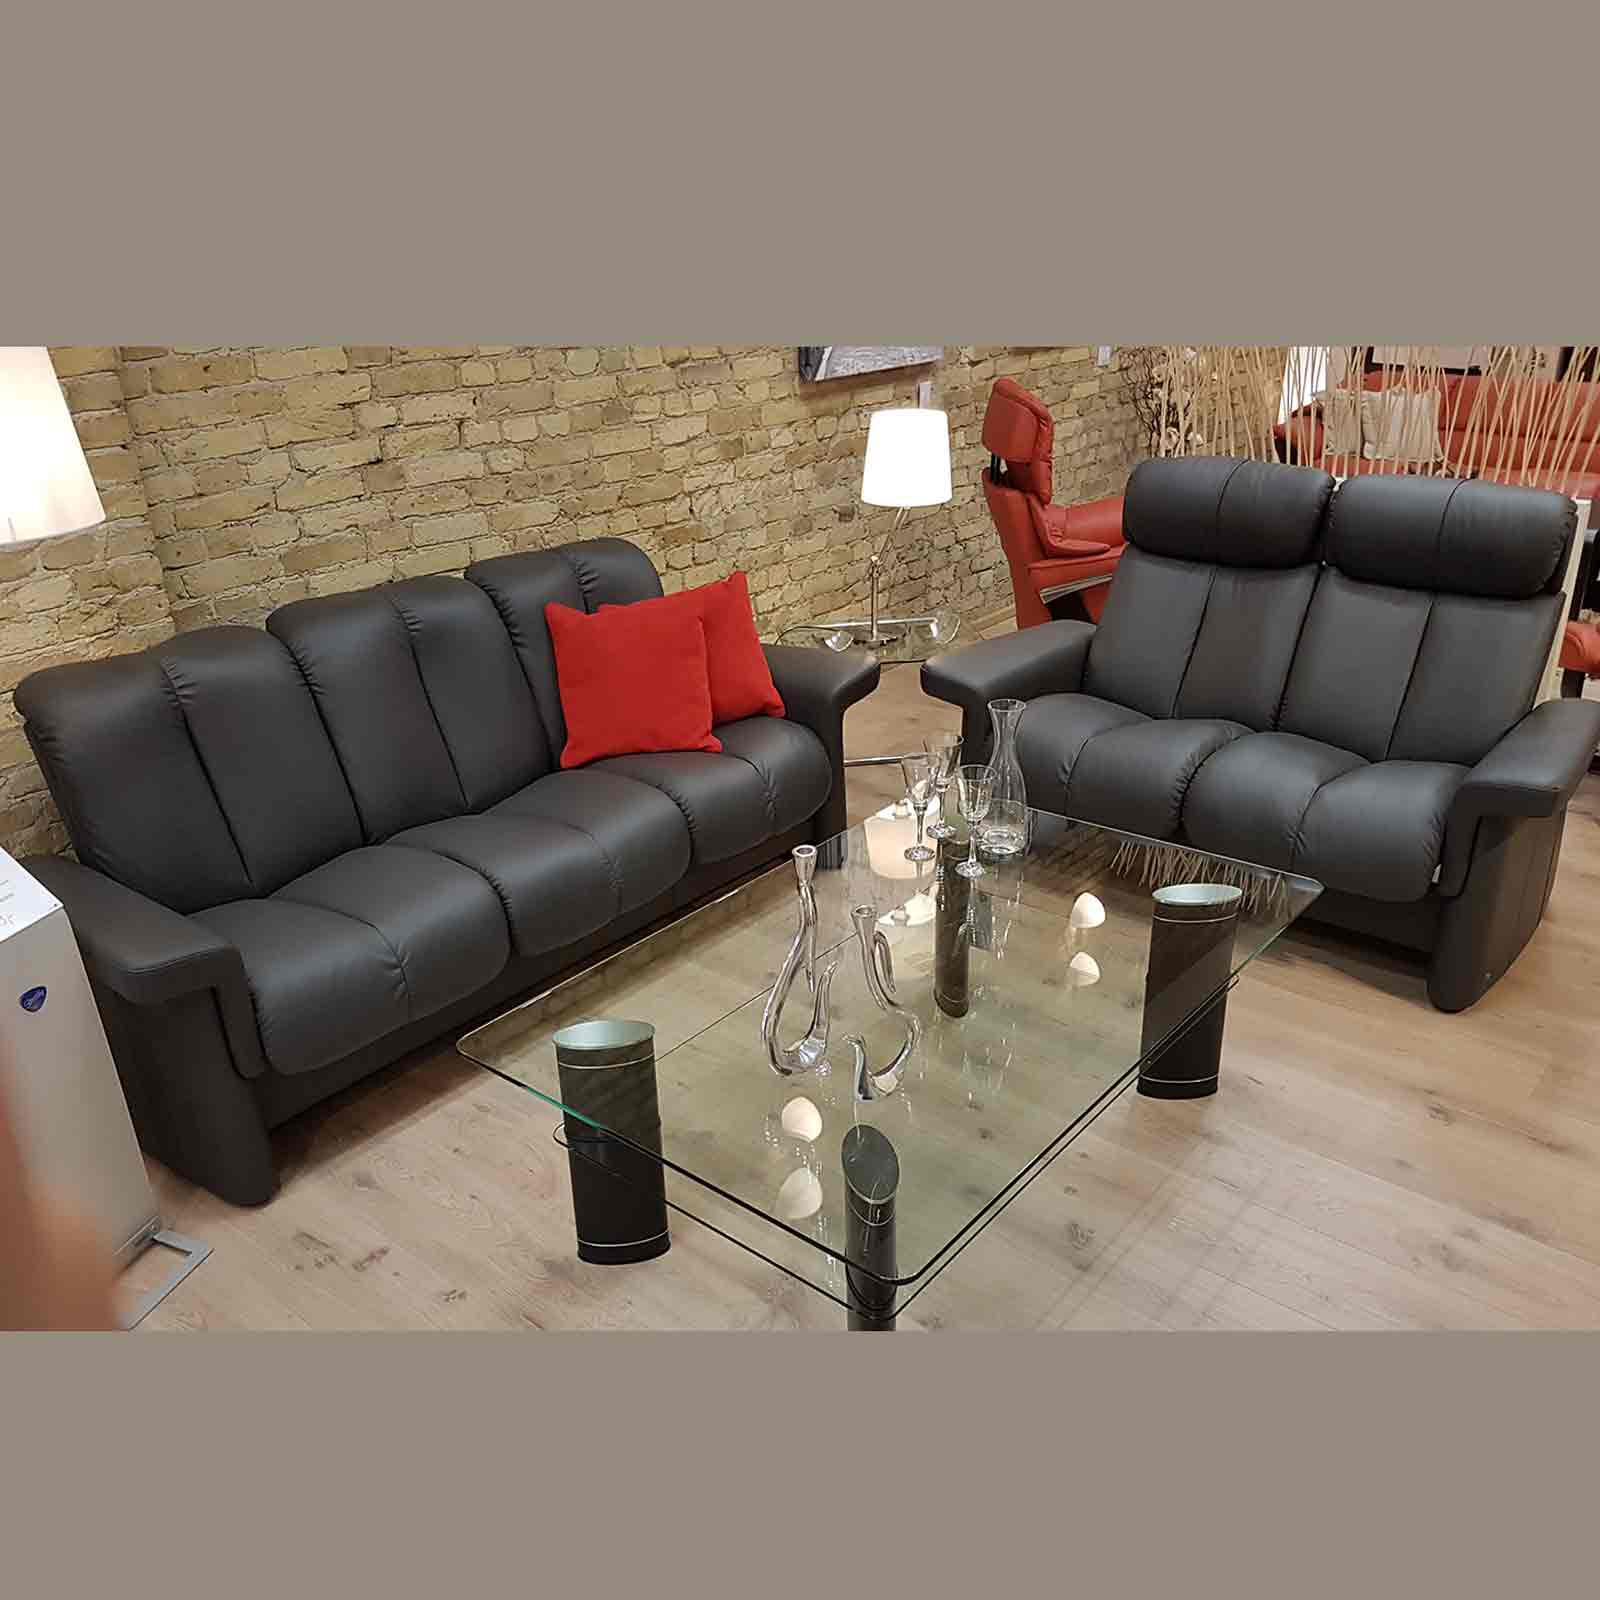 stressless eldorado sofa me king we todd did 3-sitzer + 2-sitzer legend (m) lederfarbe rock